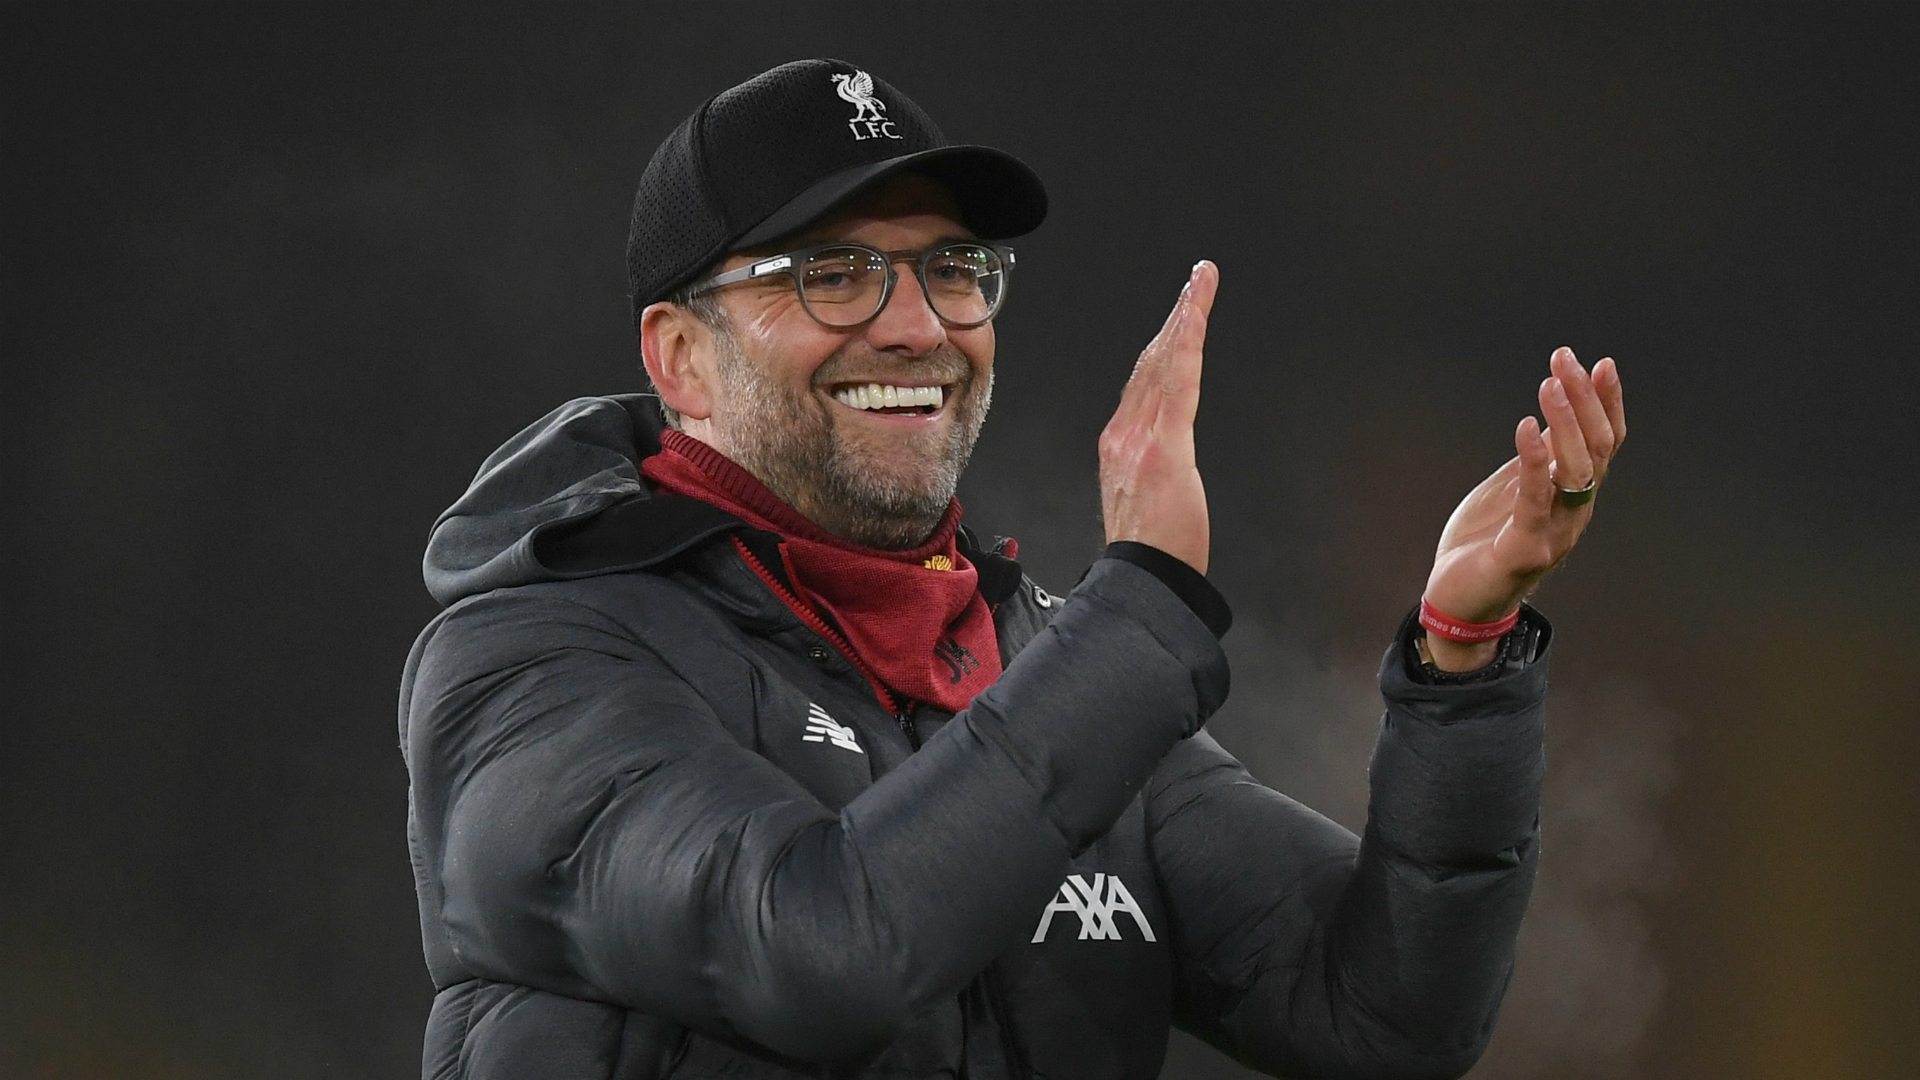 Jürgen Klopp named Premier League Manager of the Season